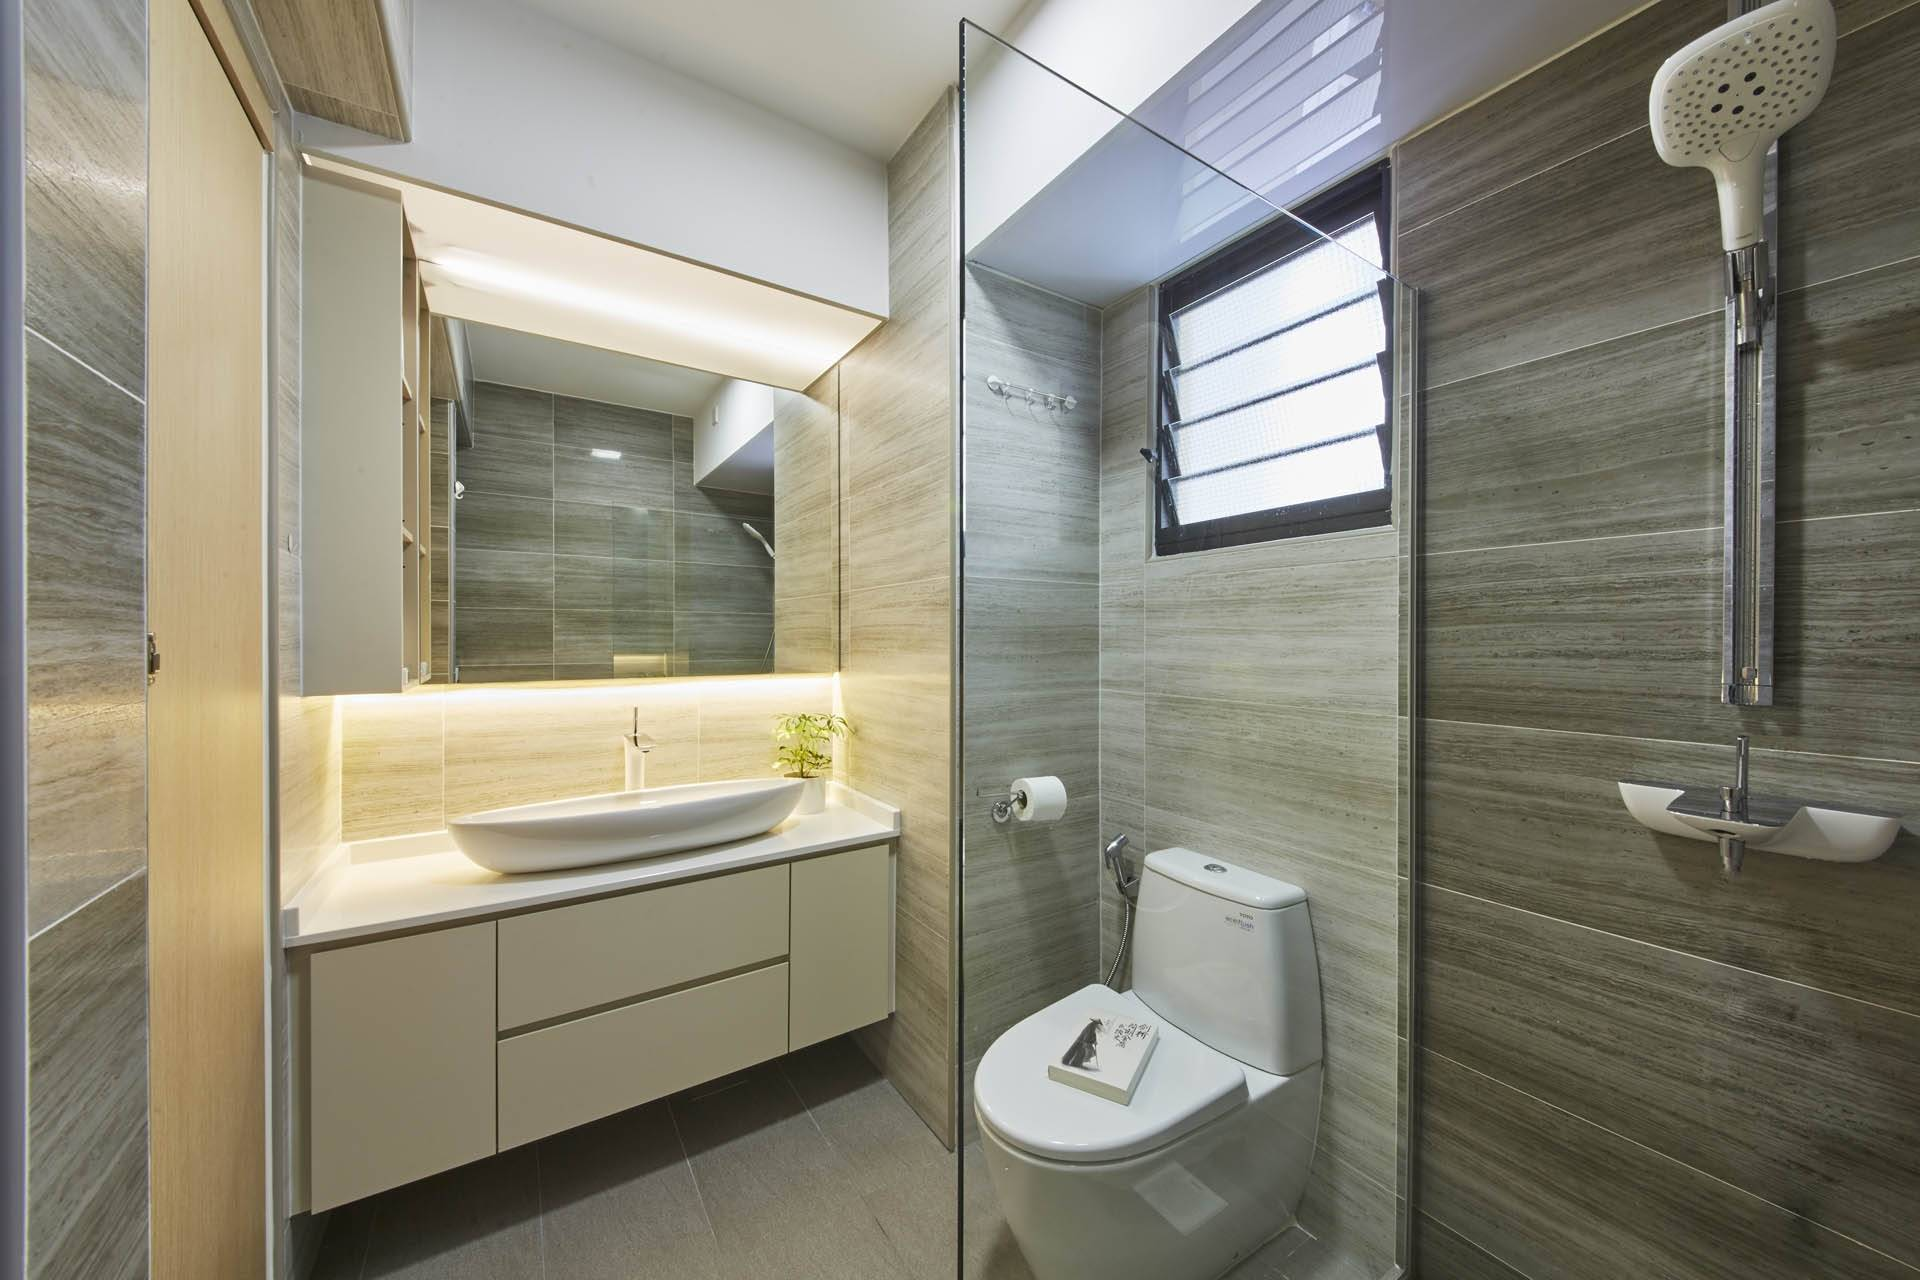 Hdb bathroom design for Small bathroom ideas hdb